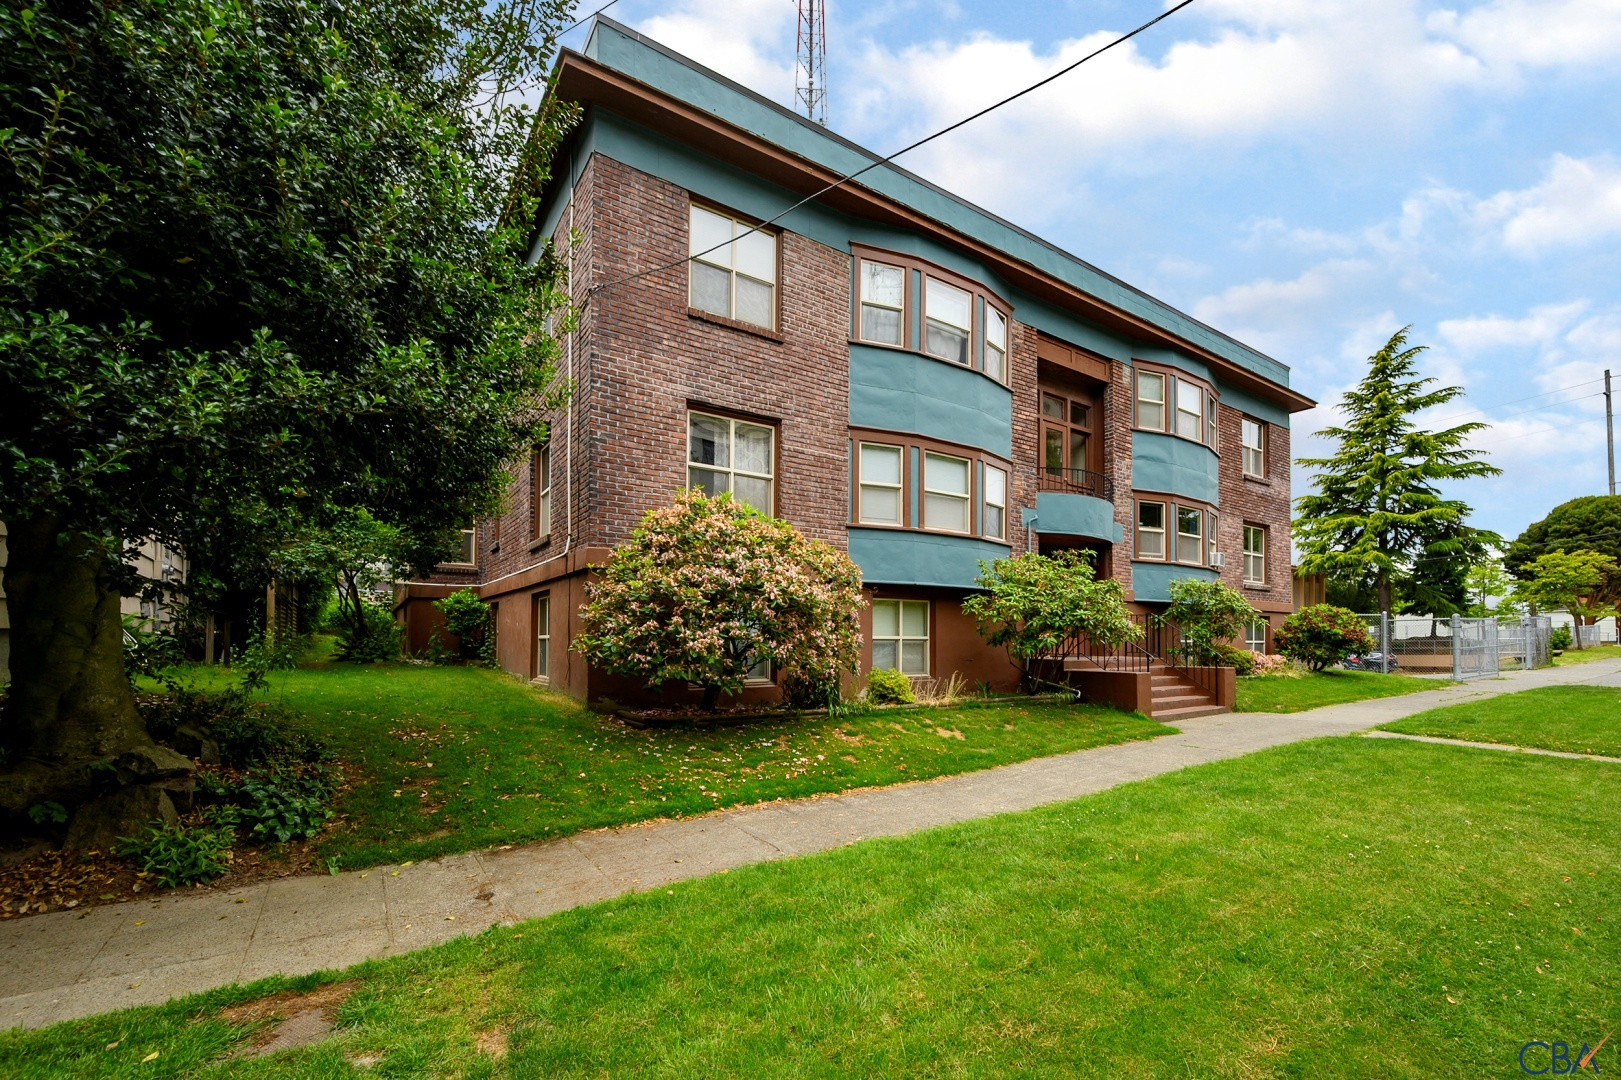 Primary Listing Image for MLS#: 618227